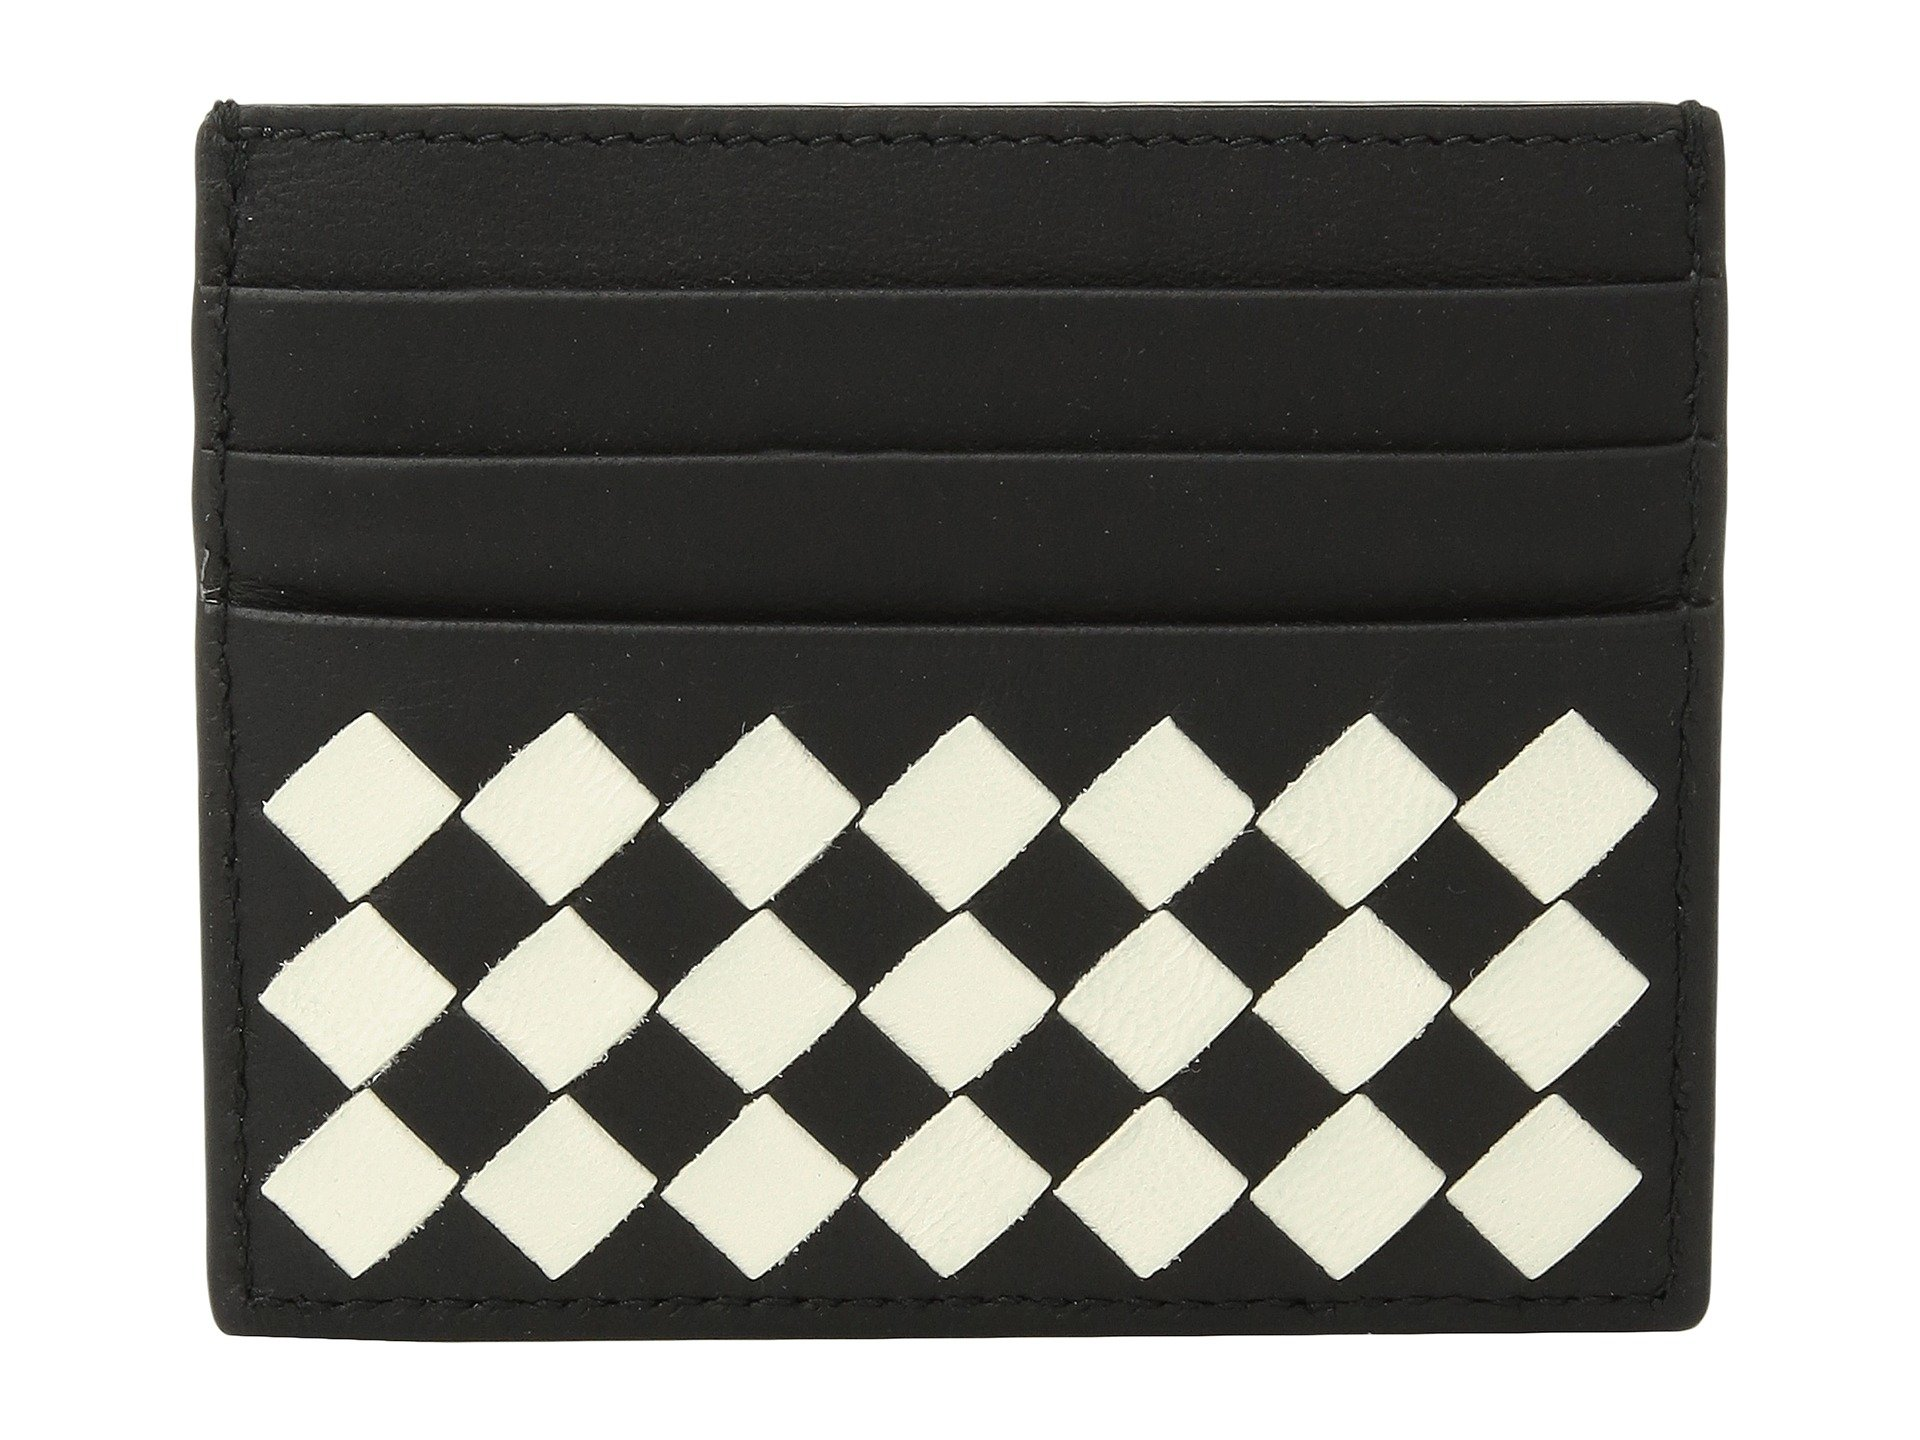 Coin & Card Cases, Leather | Shipped Free at Zappos